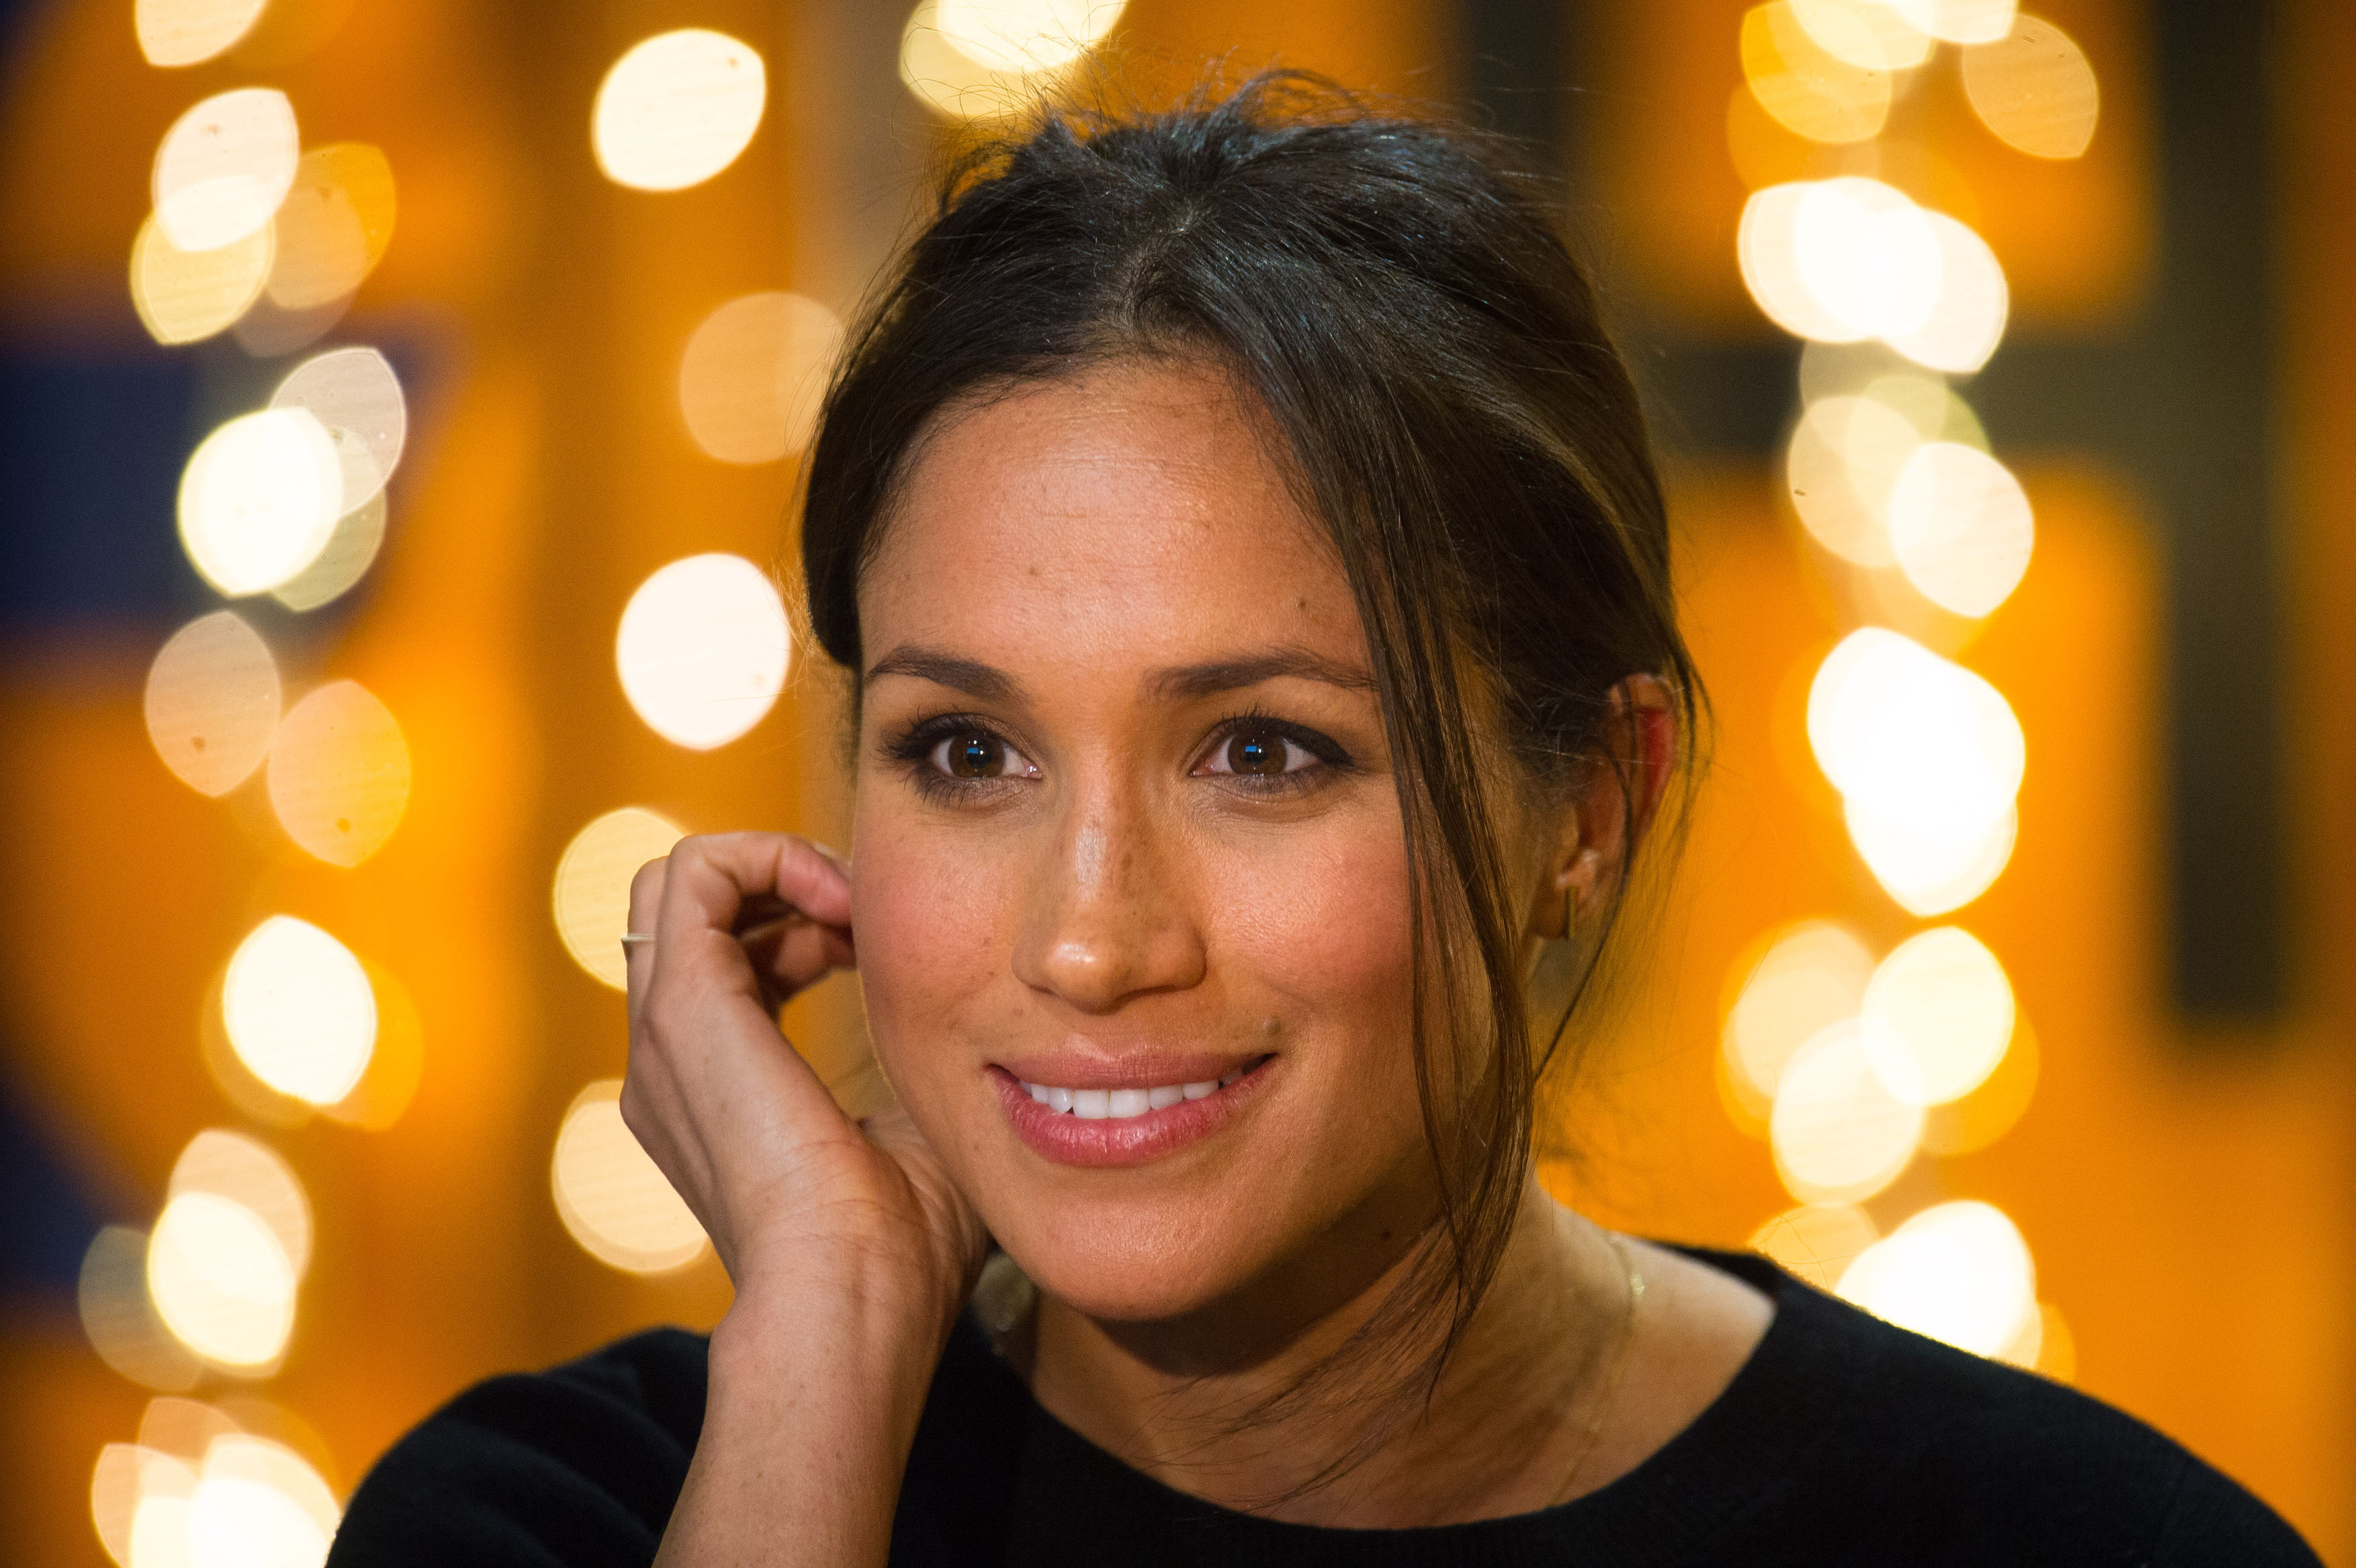 Meghan Markle during a visit to Reprezent 107.3FM in Pop Brixton on January 9, 2018 in London, England. (Photo by Dominic Lipinski - WPA Pool/Getty Images)